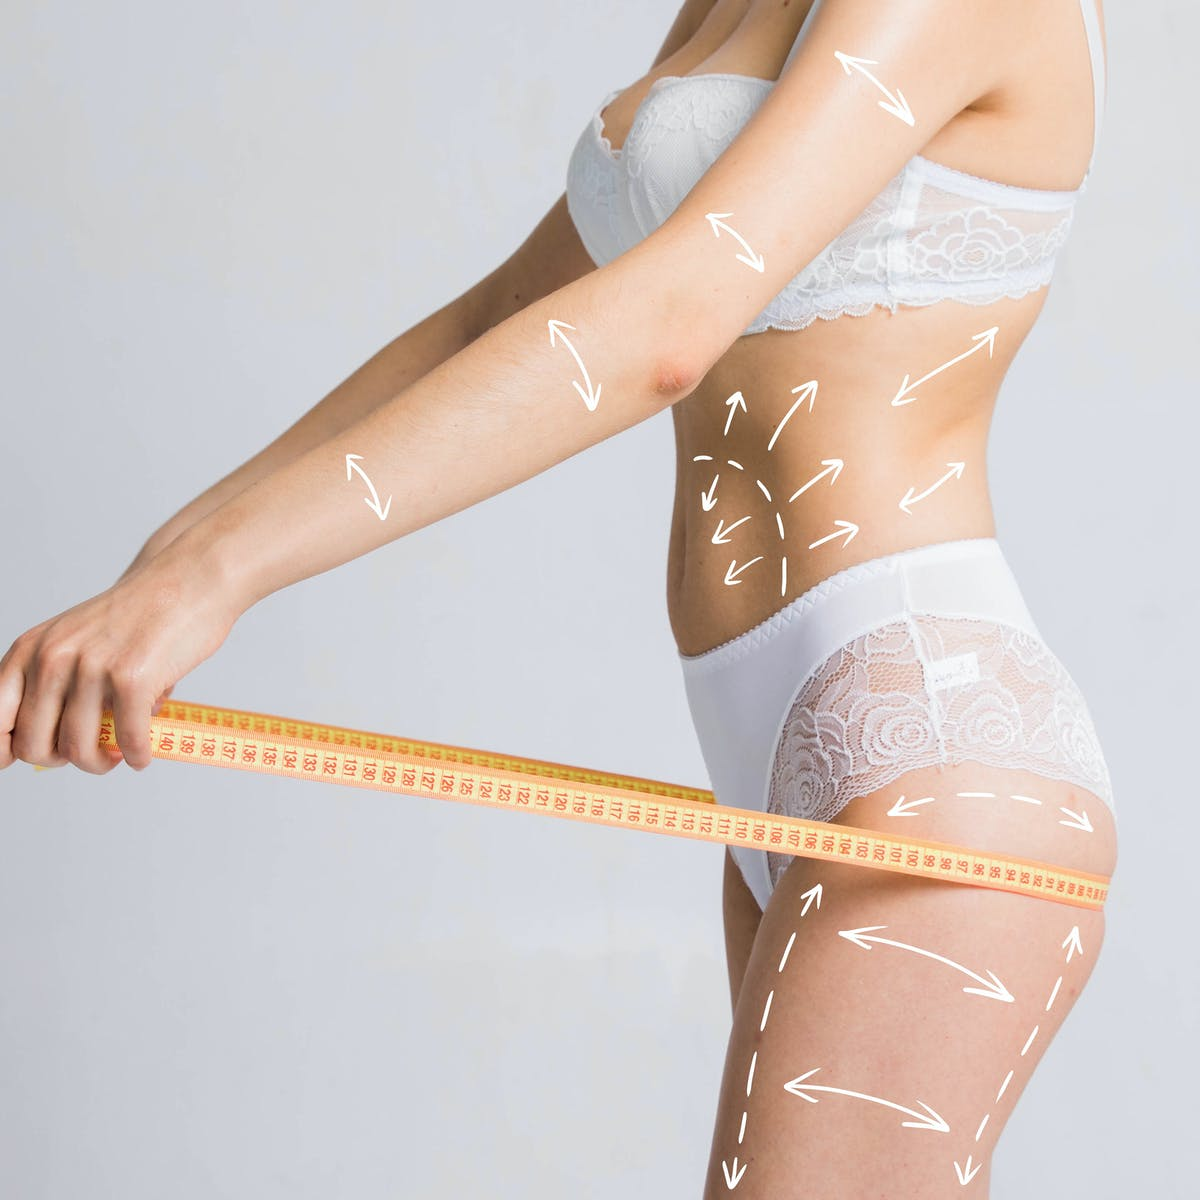 Brazilian butt lifts are the deadliest of all aesthetic procedures